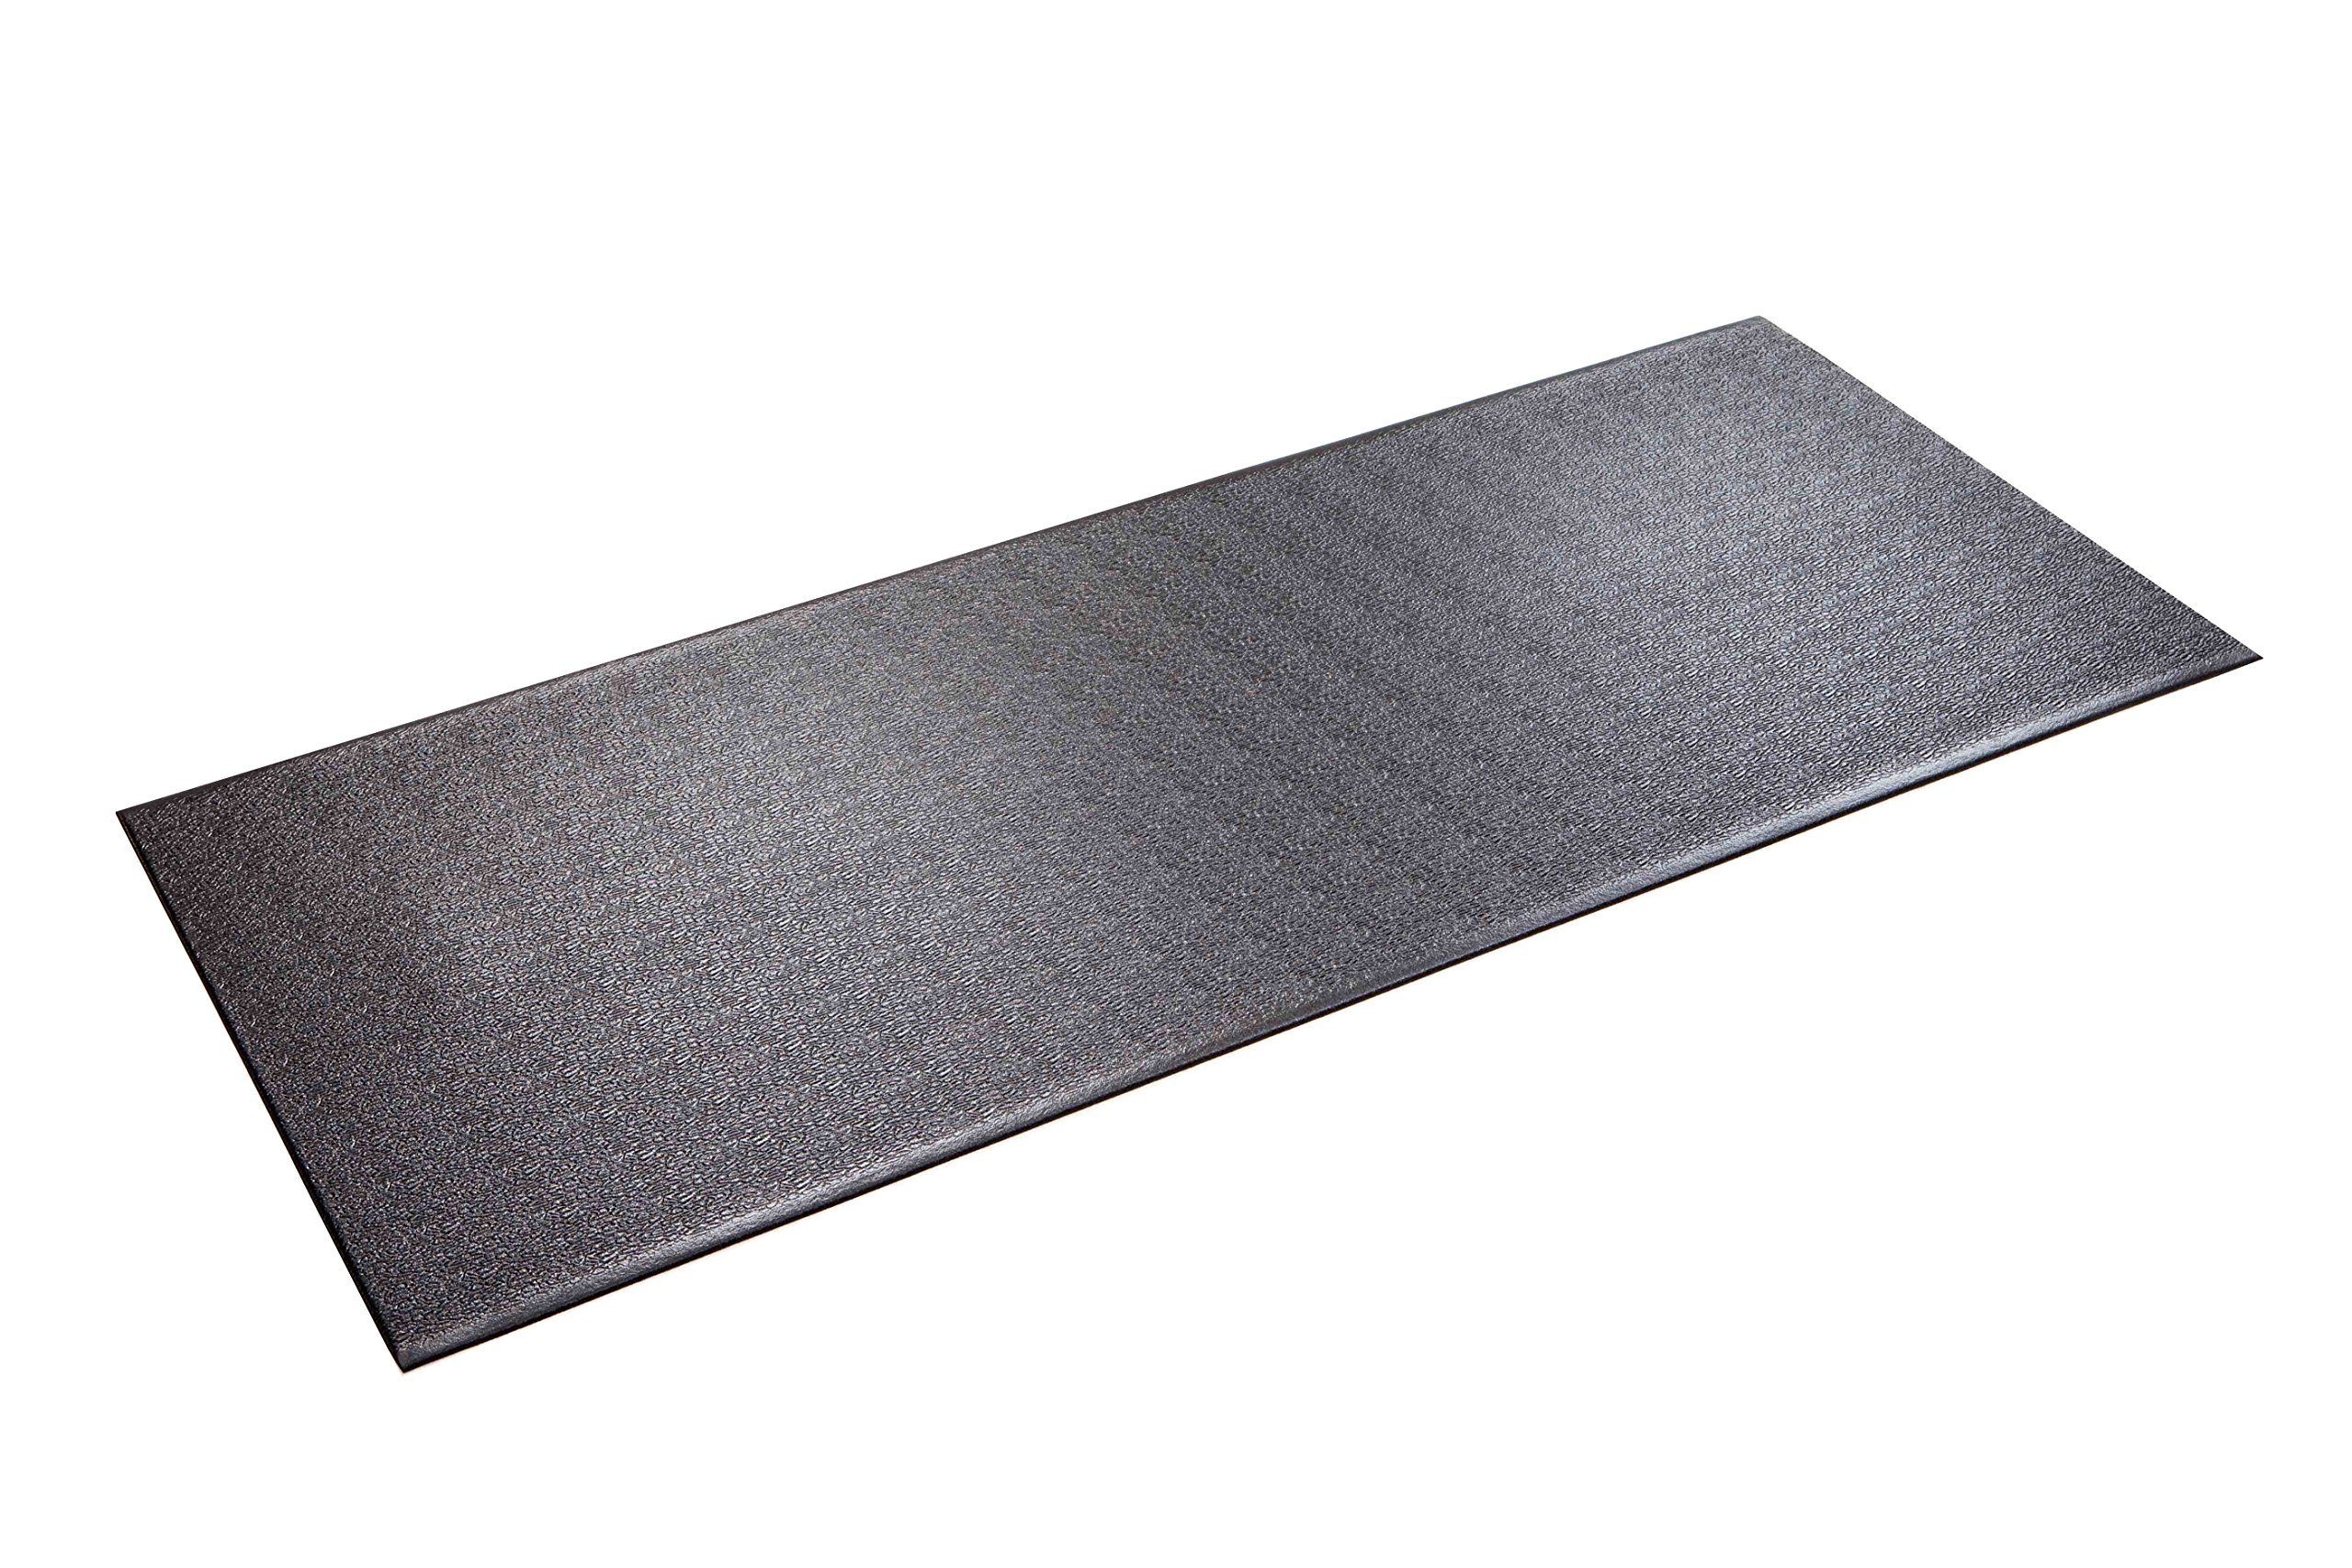 SuperMats Heavy Duty Equipment Mat 30GS Made in U.S.A. for Treadmills Ellipticals Rowing Machines Recumbent Bikes and Exercise Equipment  (2.5-Feet x 6-Feet) (30'' x 72'') (76.20 cm x 182.88 cm)